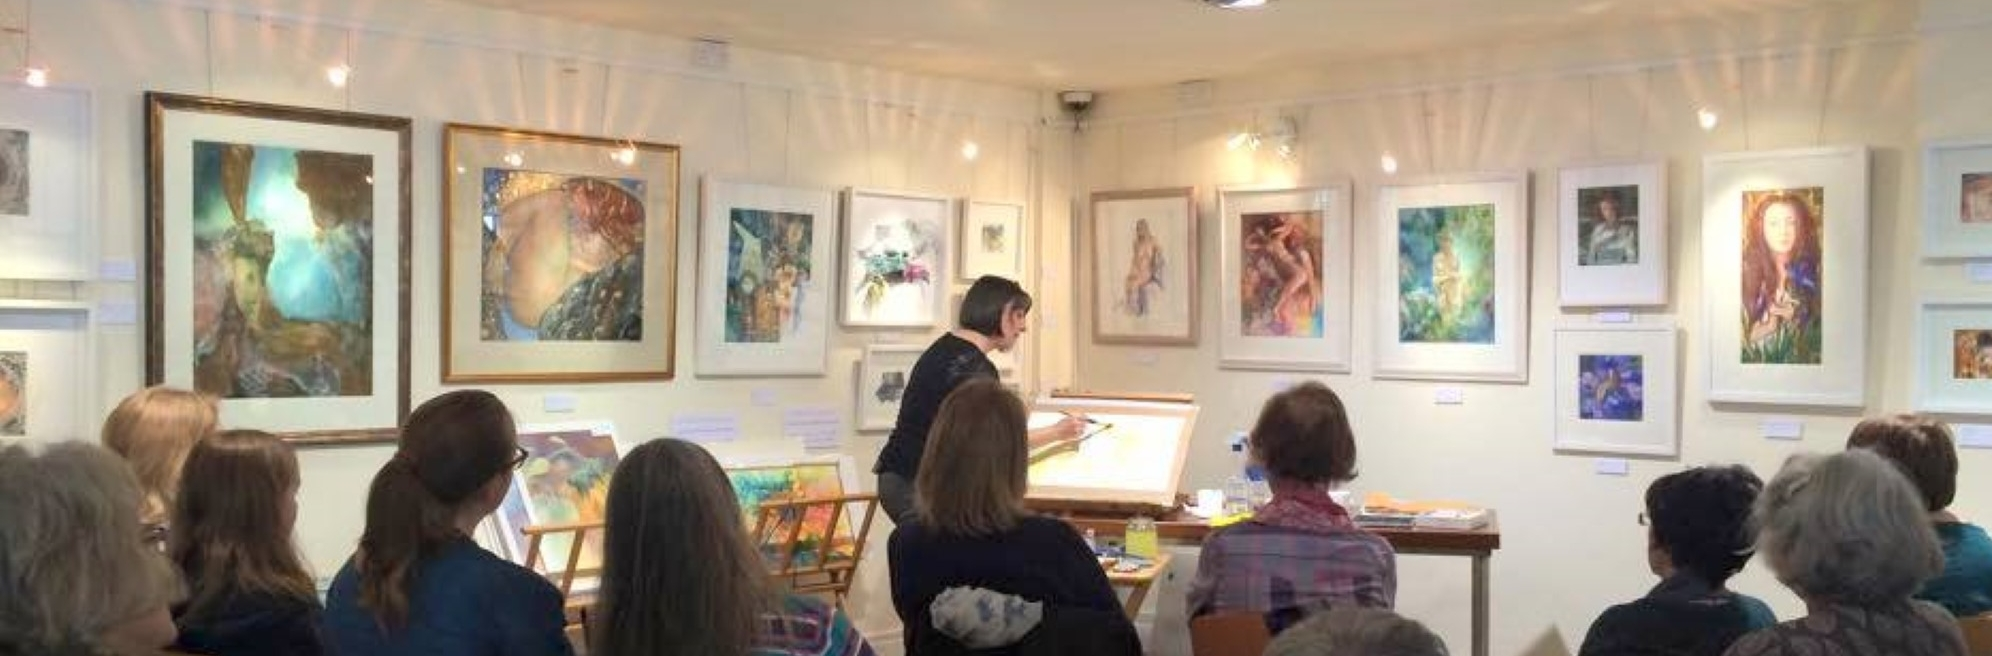 Painting Demonstration at my exhibition Of Woman: Exploring the Sacred Feminine (in Dún Laoghaire Art Gallery)